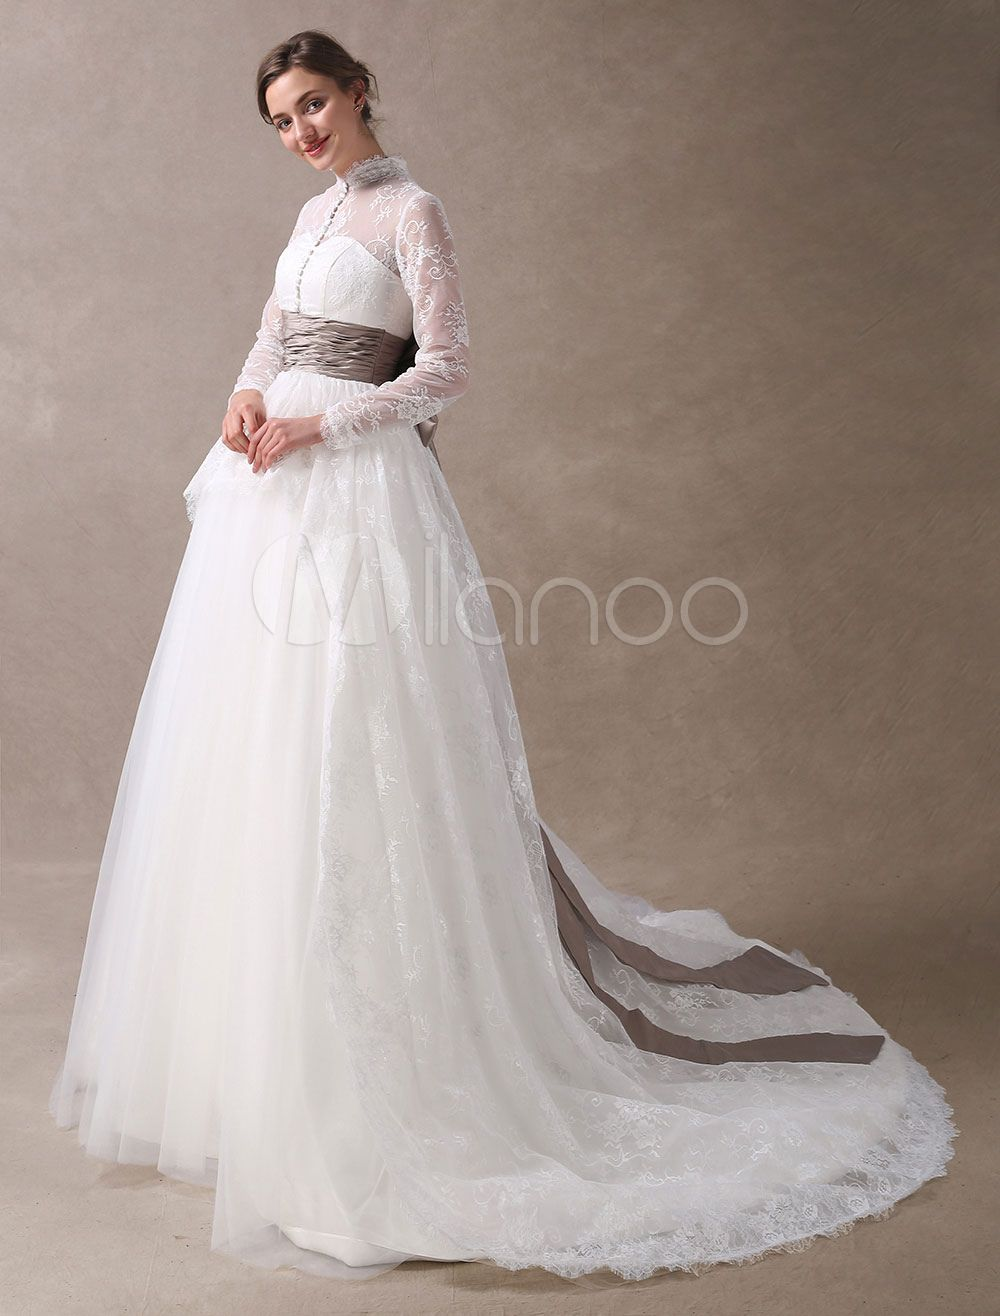 Princess wedding dresses ball gowns lace long sleeve bridal dress